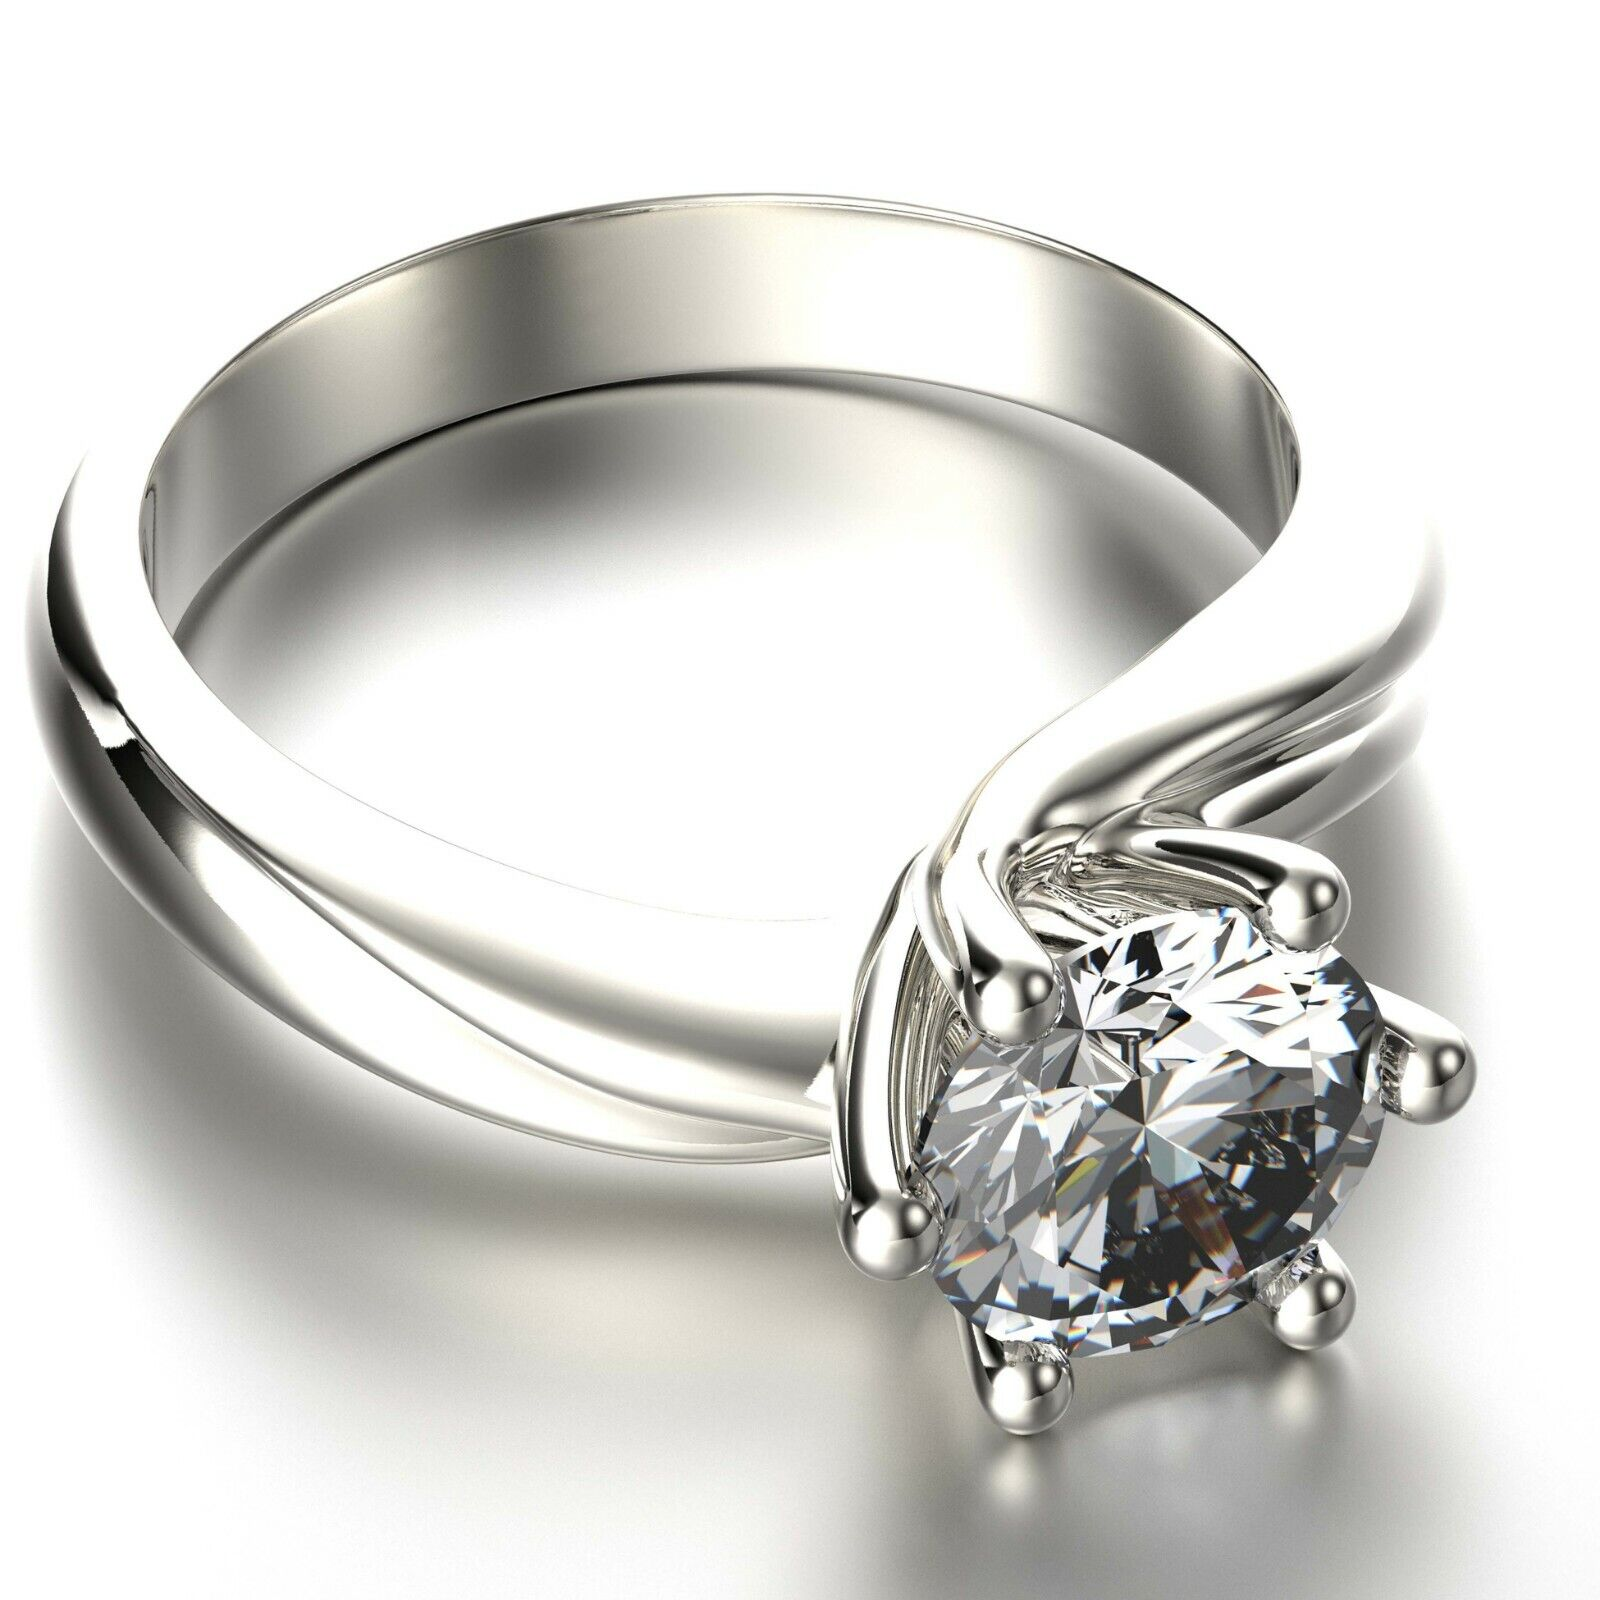 Real GIA Certified Round Cut Diamond Solitaire Engagement Ring 1.50 Carat 14k